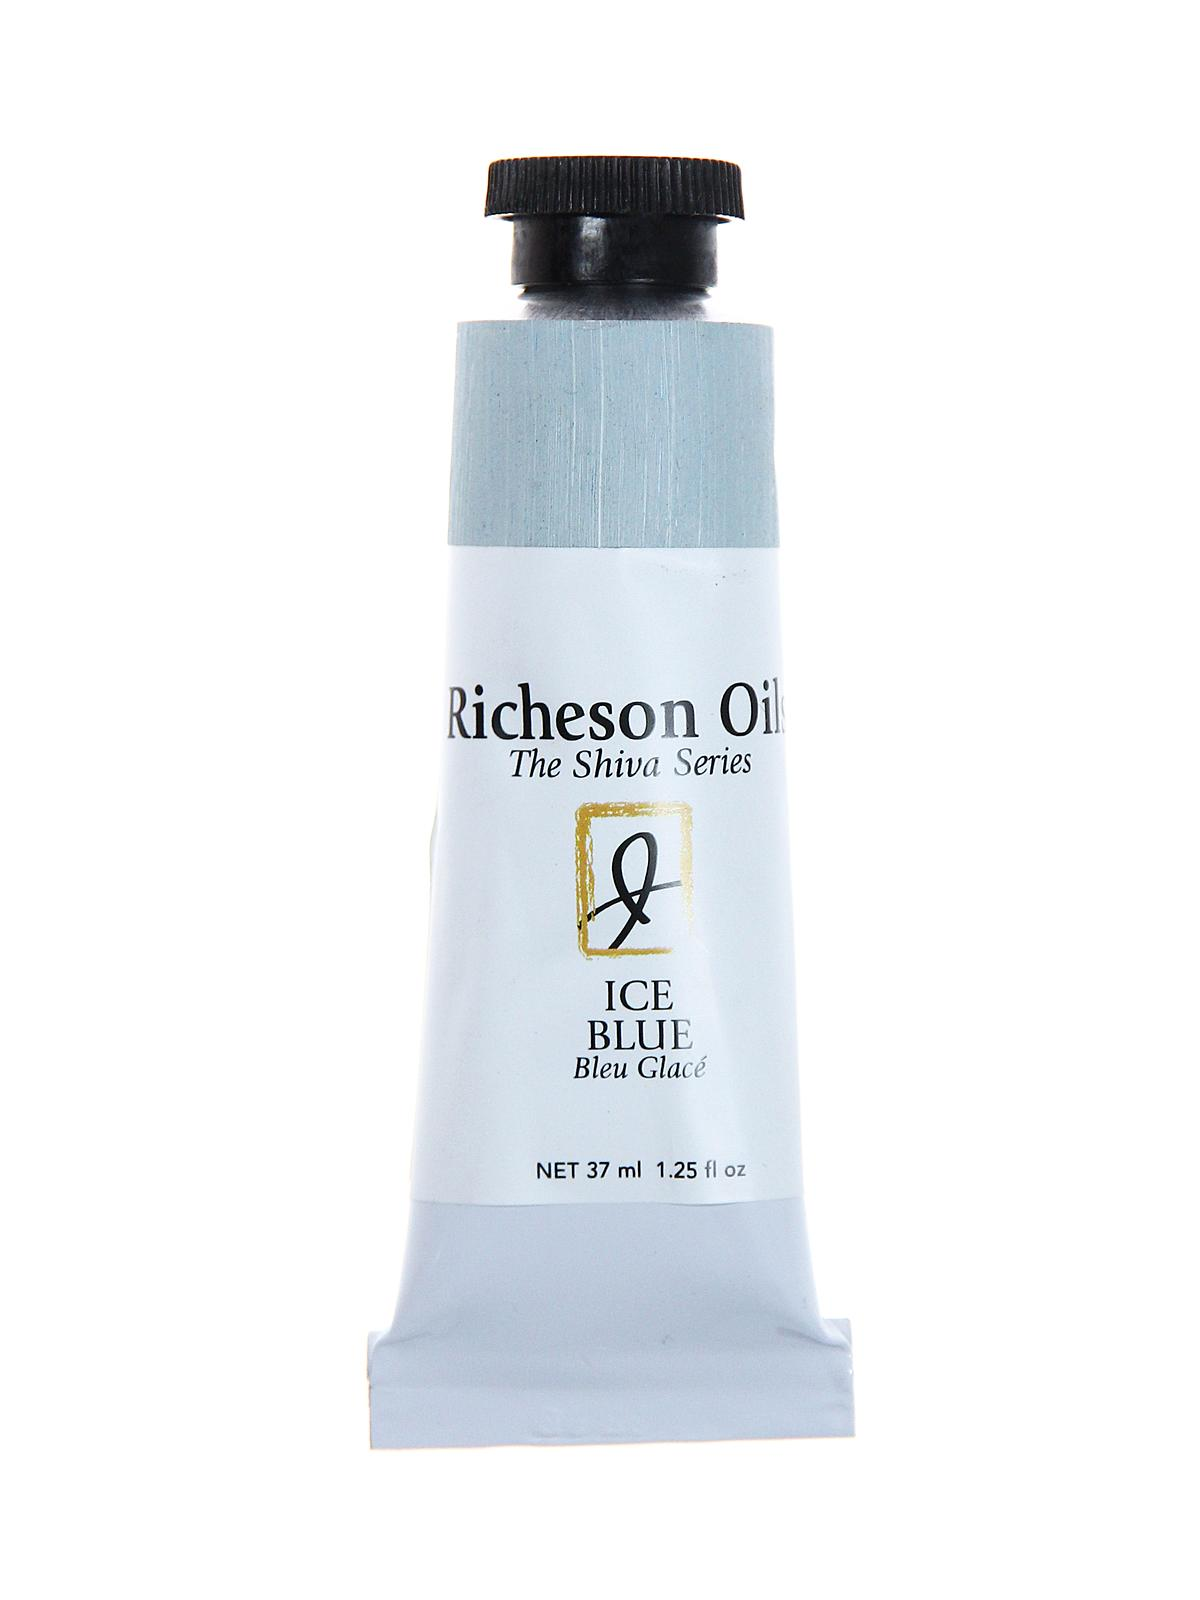 Richeson Oils The Shiva Series